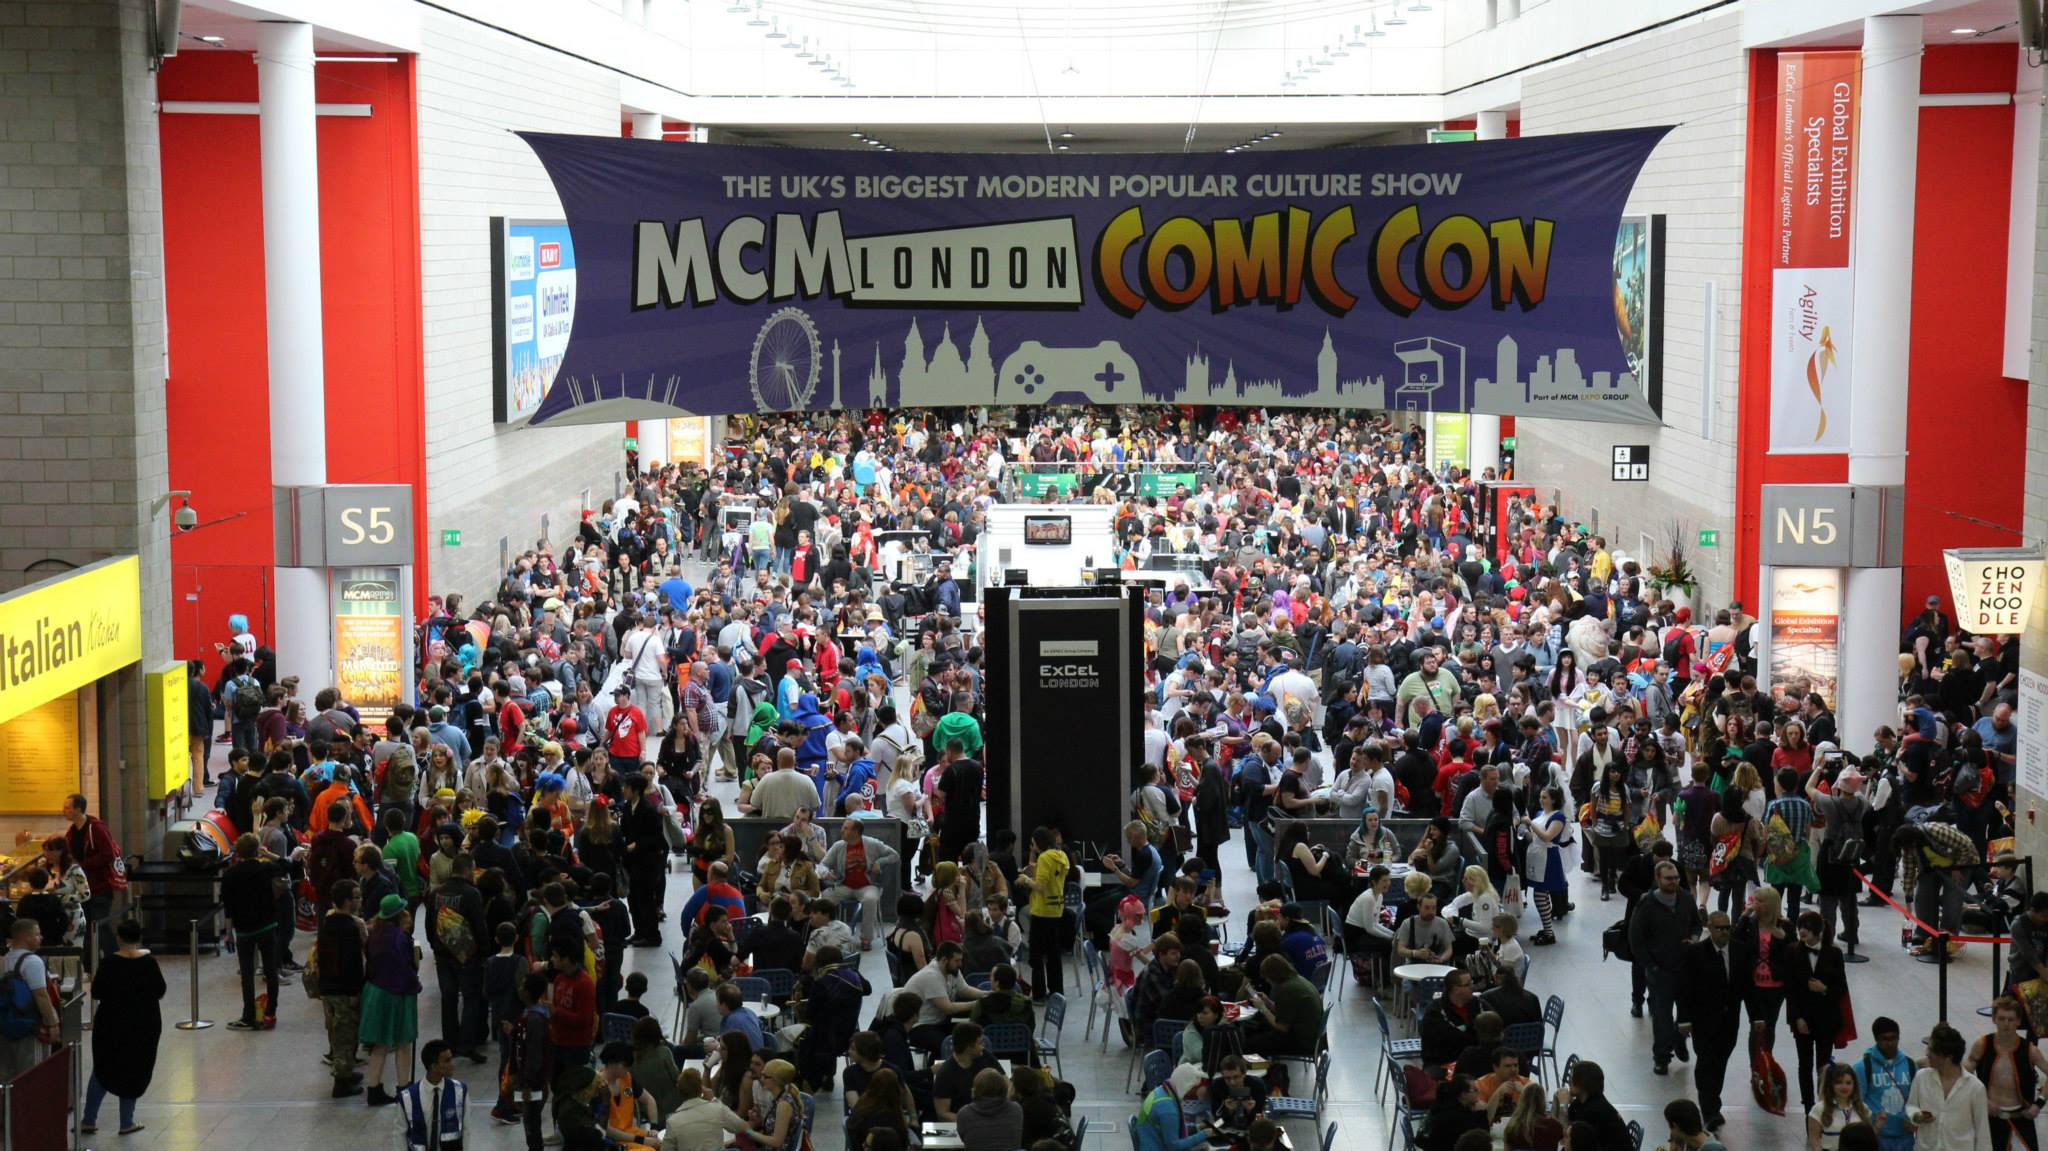 MCM Comic Con London 2015 – Atmosphere & Cosplay – The Photographs